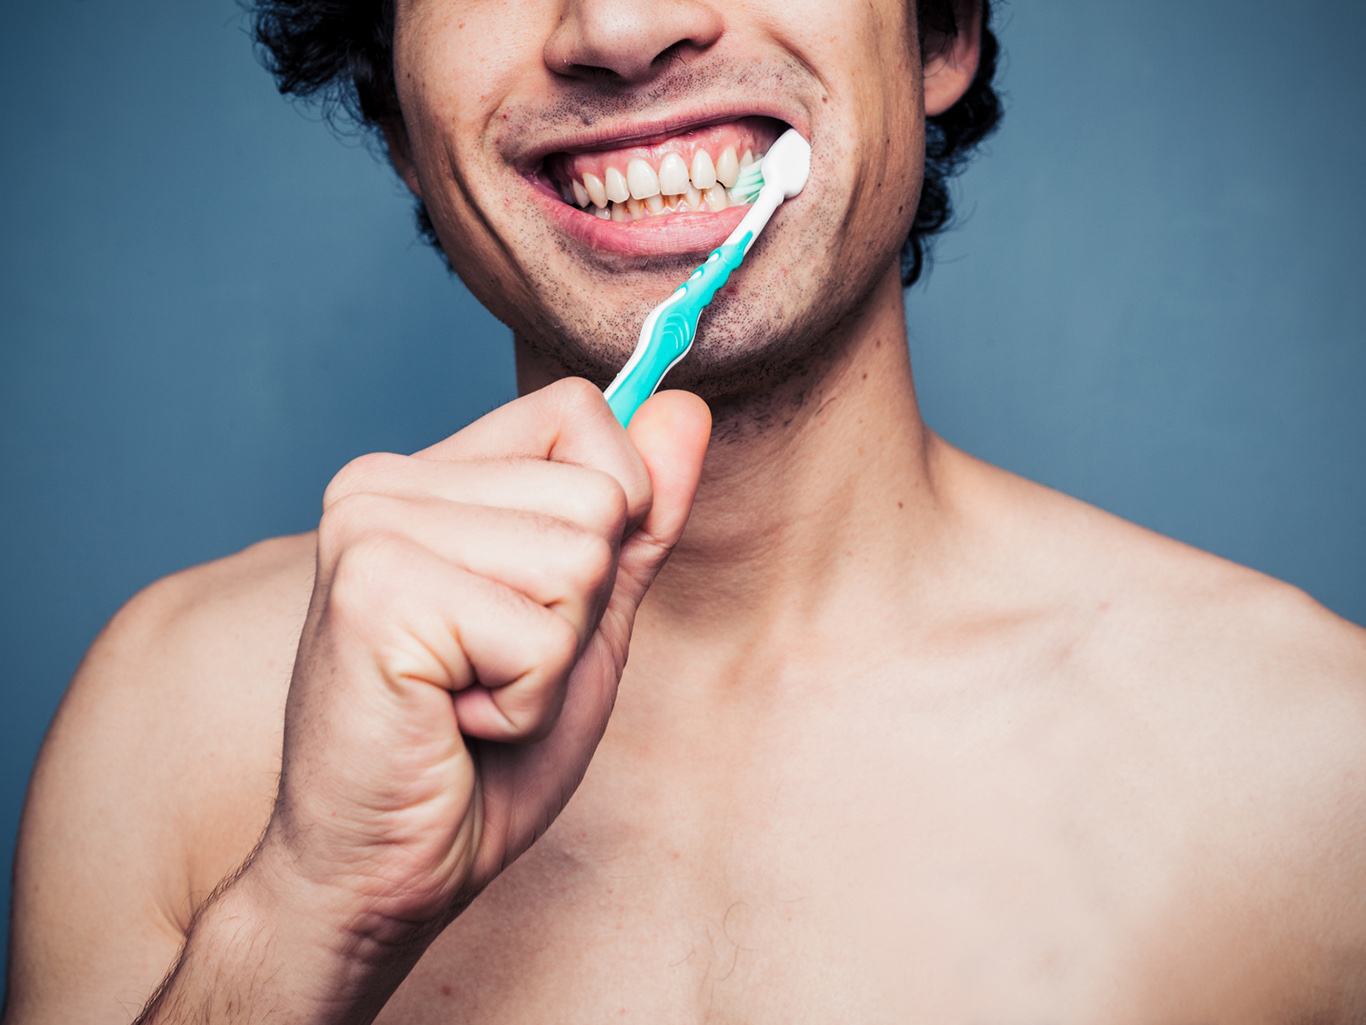 Choosing a toothbrush - electric or ordinary?